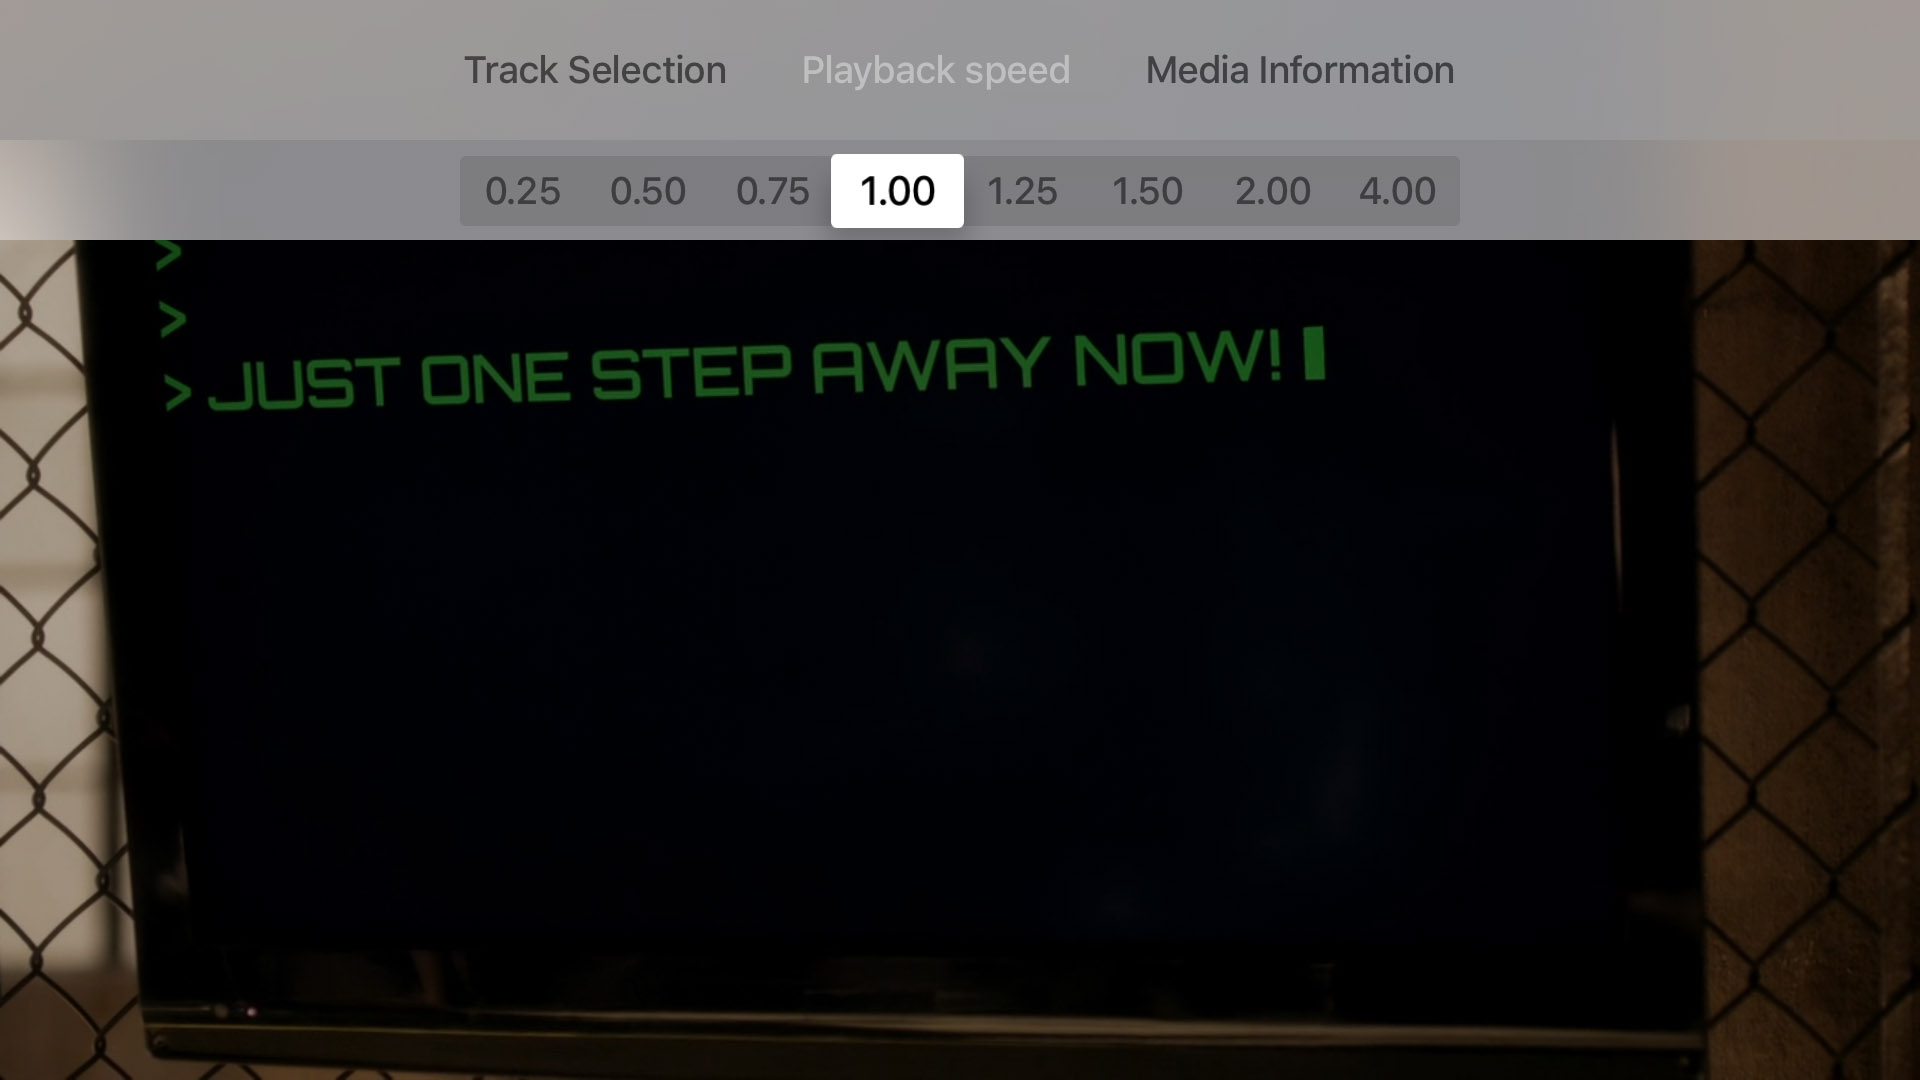 Adjust the playback speed of the video.